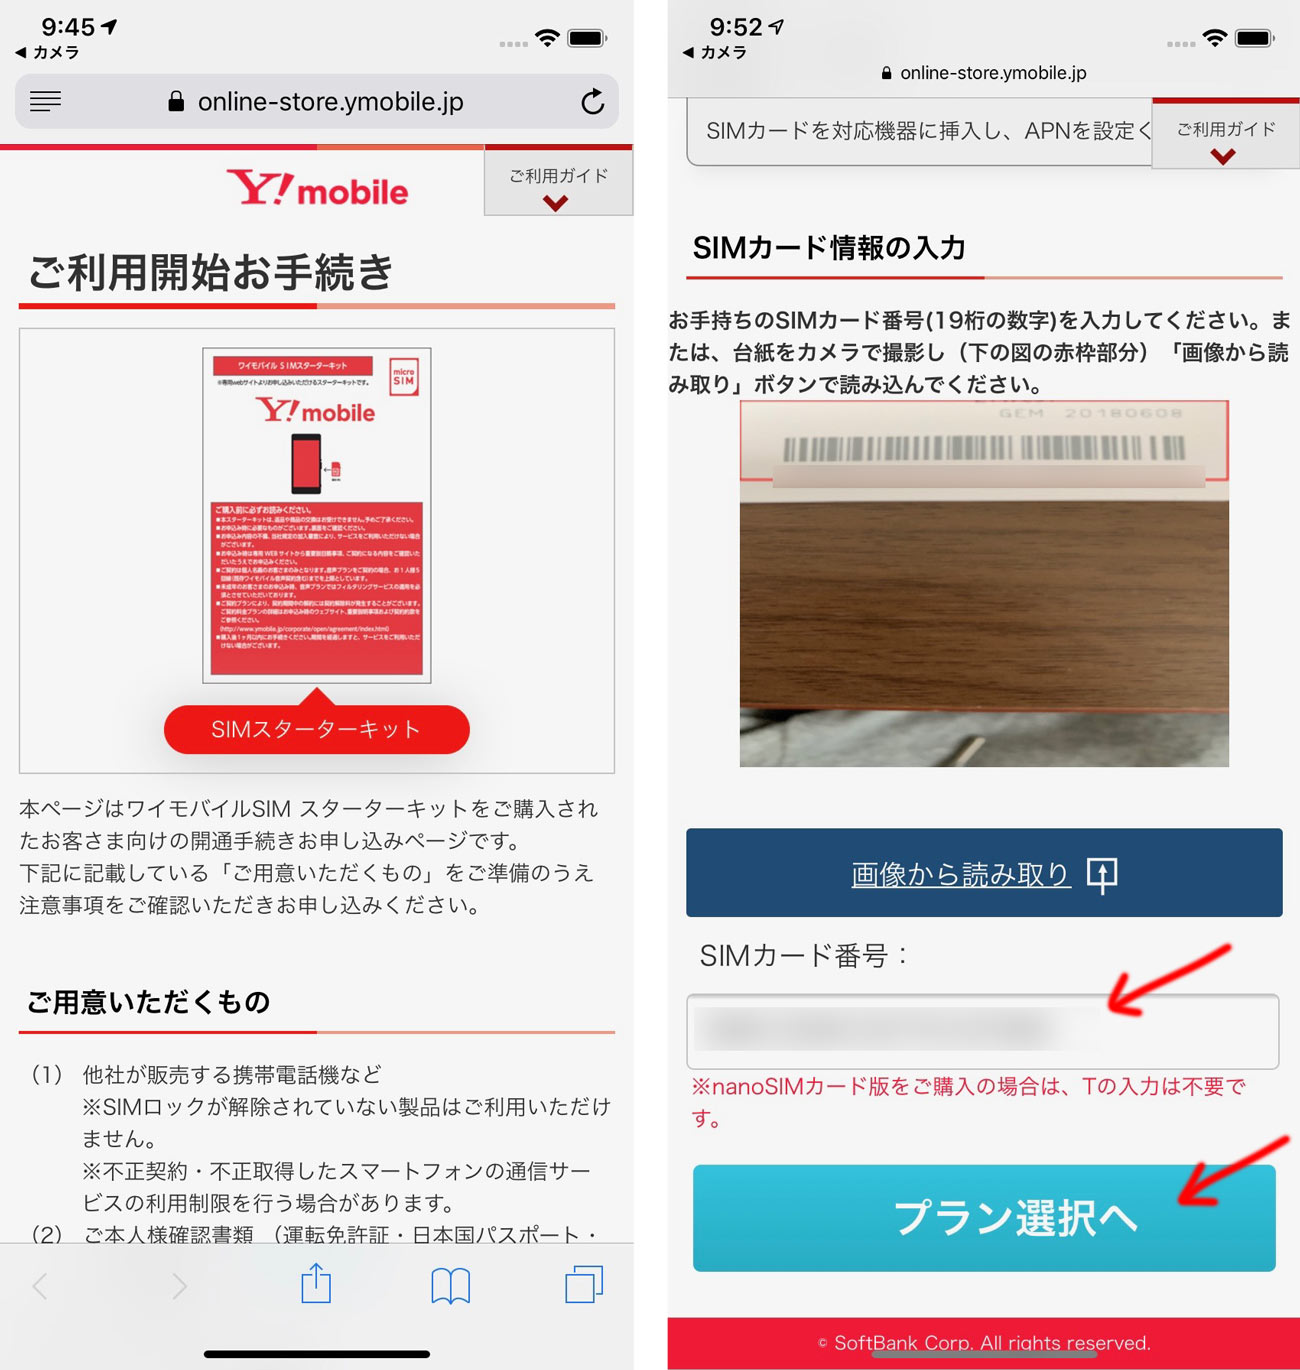 Y!mobile 申し込み手続き手順1